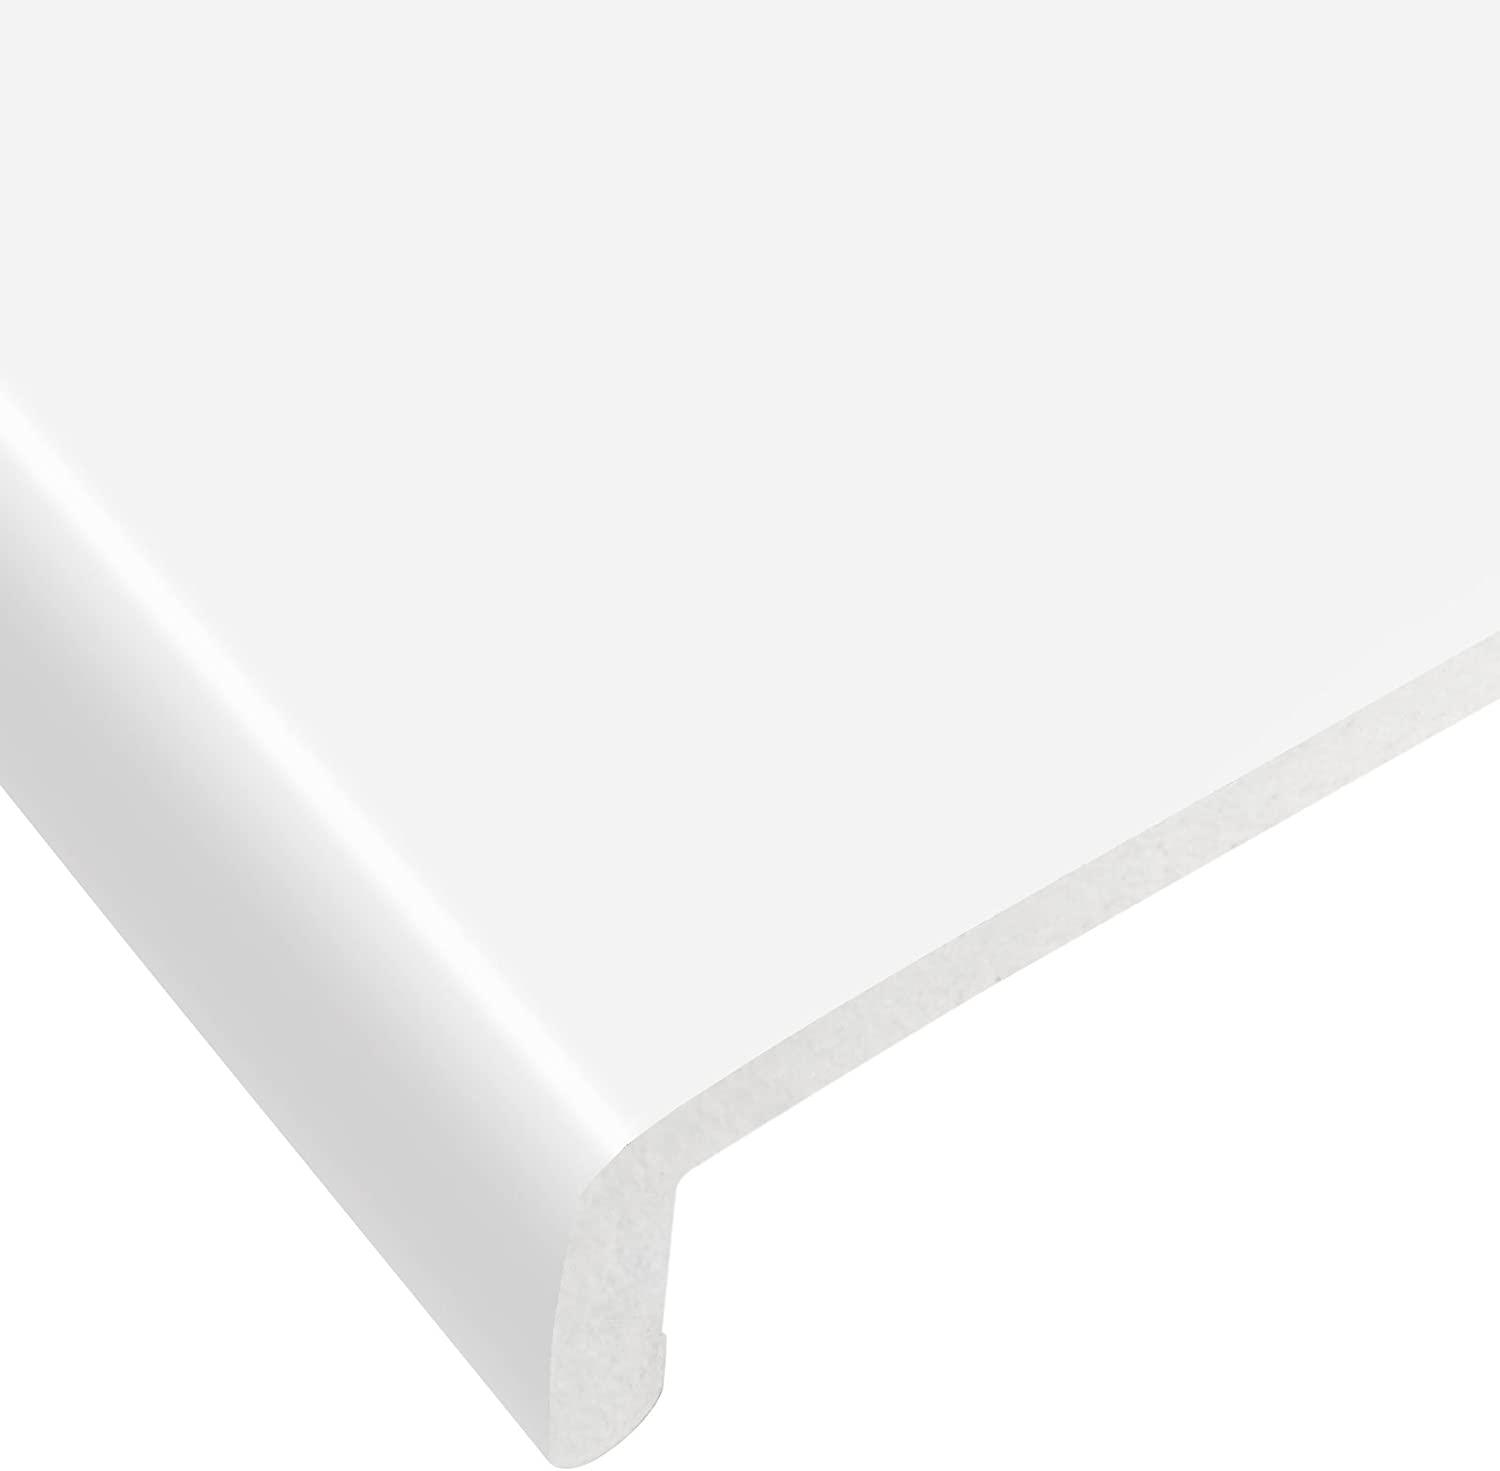 150mm Black Ash UPVC Window Board//Cill Cover 2.5m Long 9mm Thick Plastic Window Sill Capping